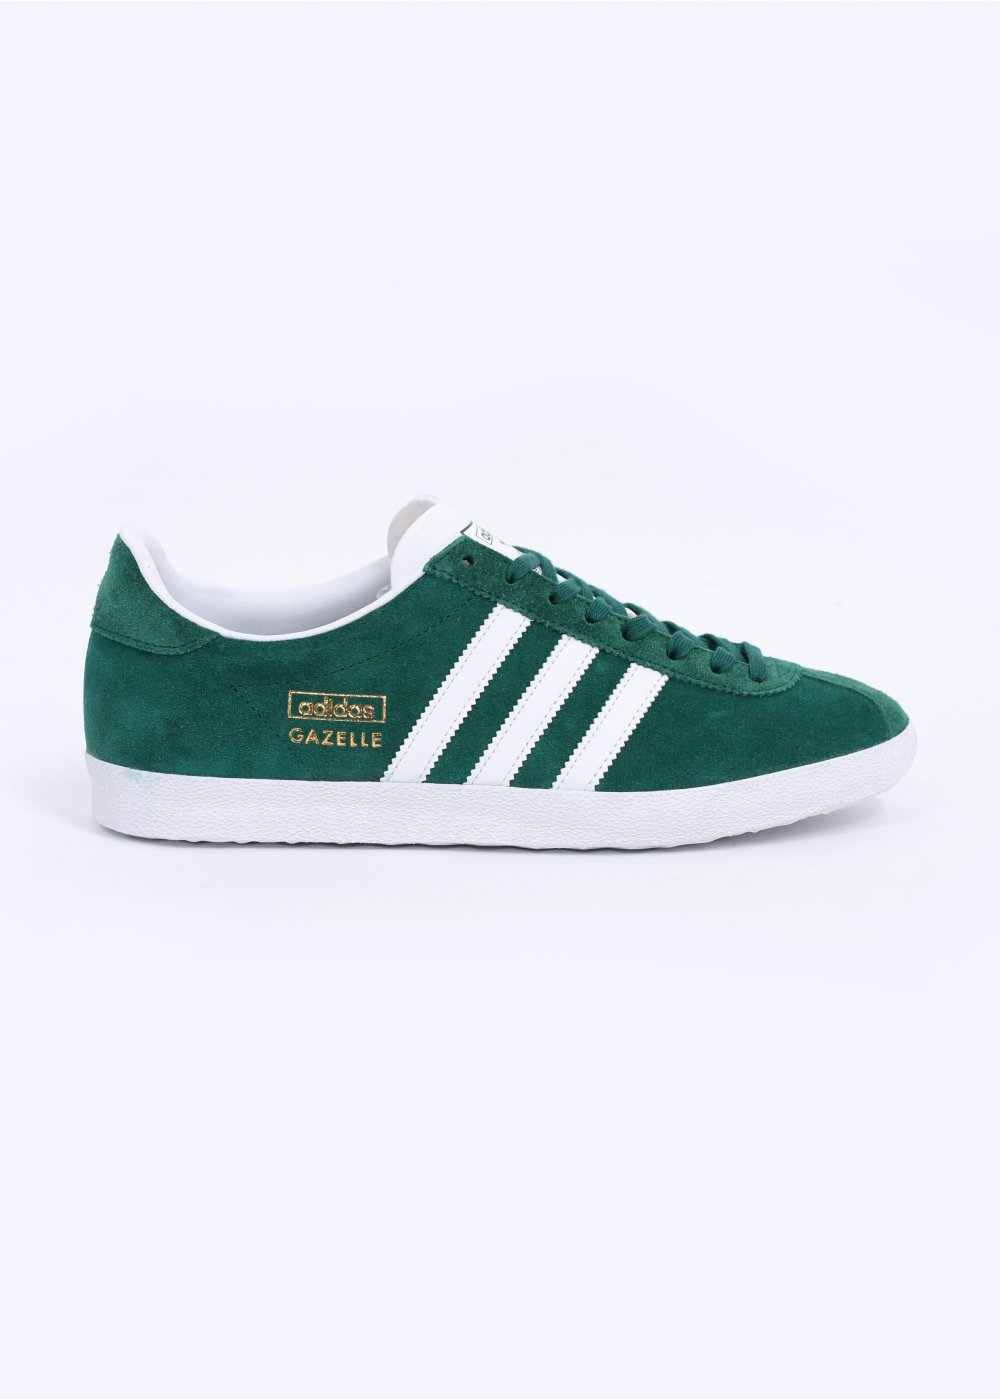 Buy cheap gazelle og trainers  Up to OFF34% Discounts cb938e8b3